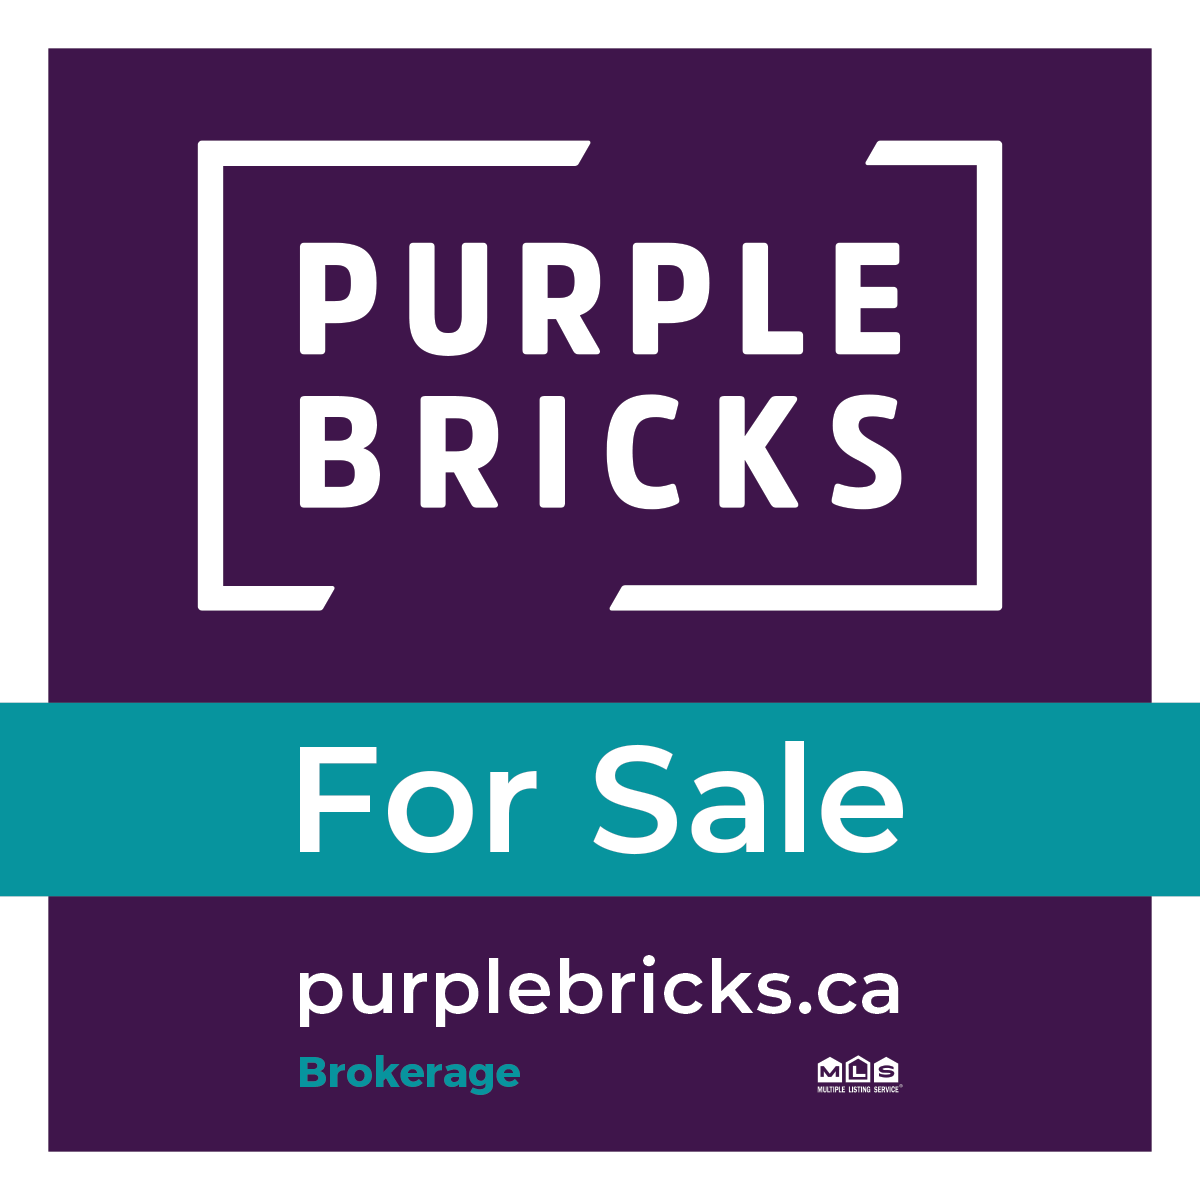 Official Images Photos And Logos Purplebricks